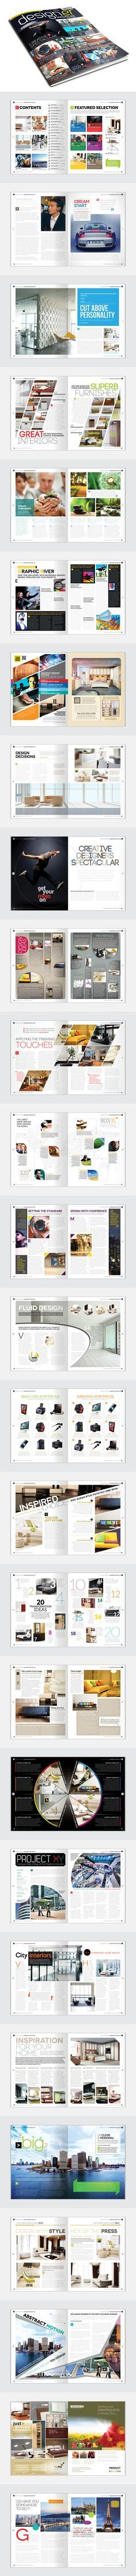 Magazine Template - InDesign 56 Page Layout V2 on Behance